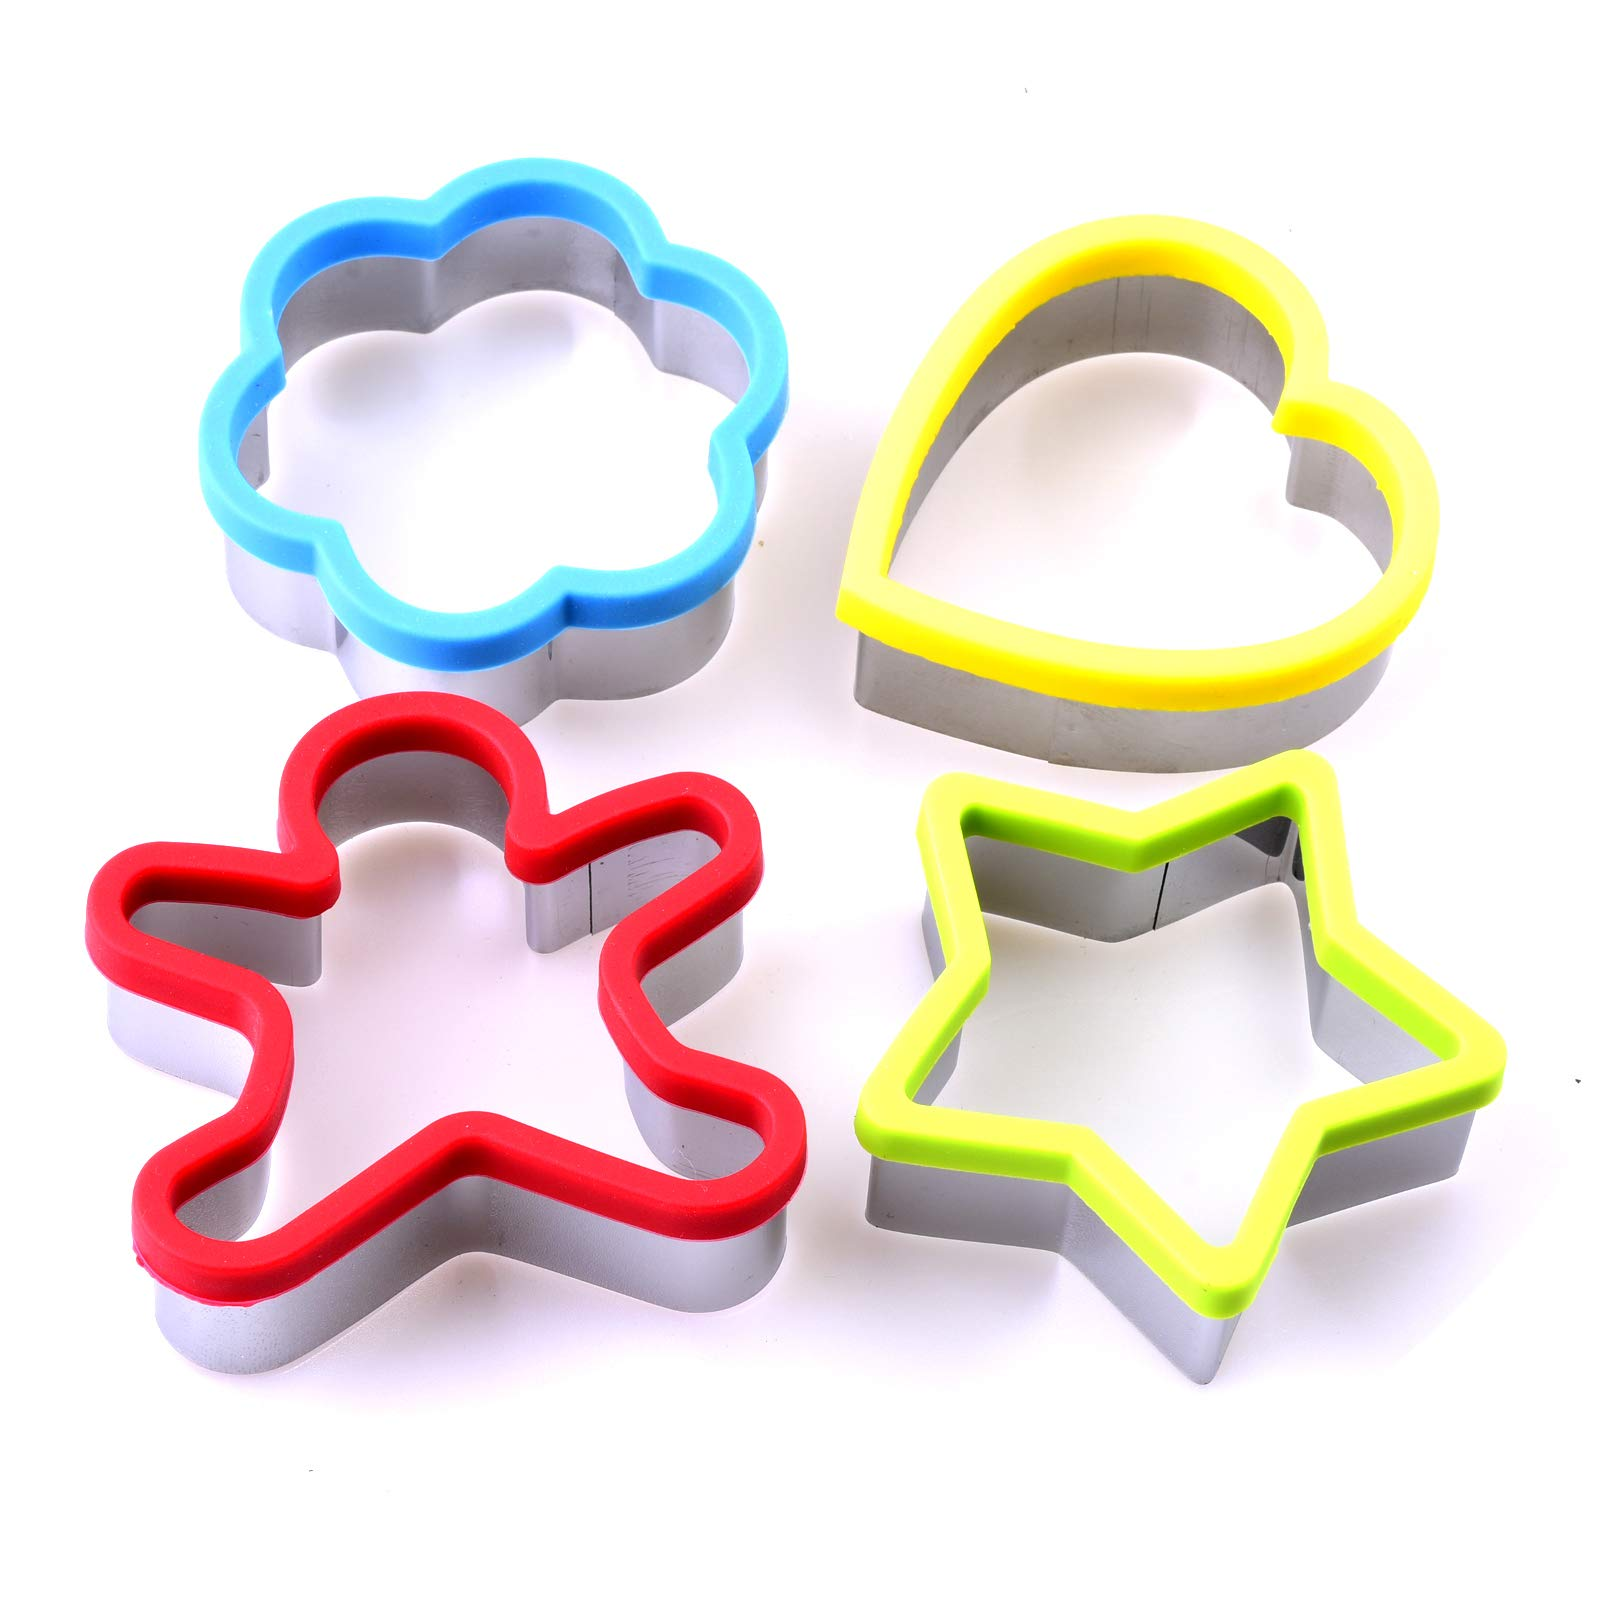 BWD Cookie Cutters Set 4 Pcs Stainless Steel Silicone Heart Star Flower Snowman Shaped Mould/Cookie Biscuits Pastry Gingerbread Shortbread